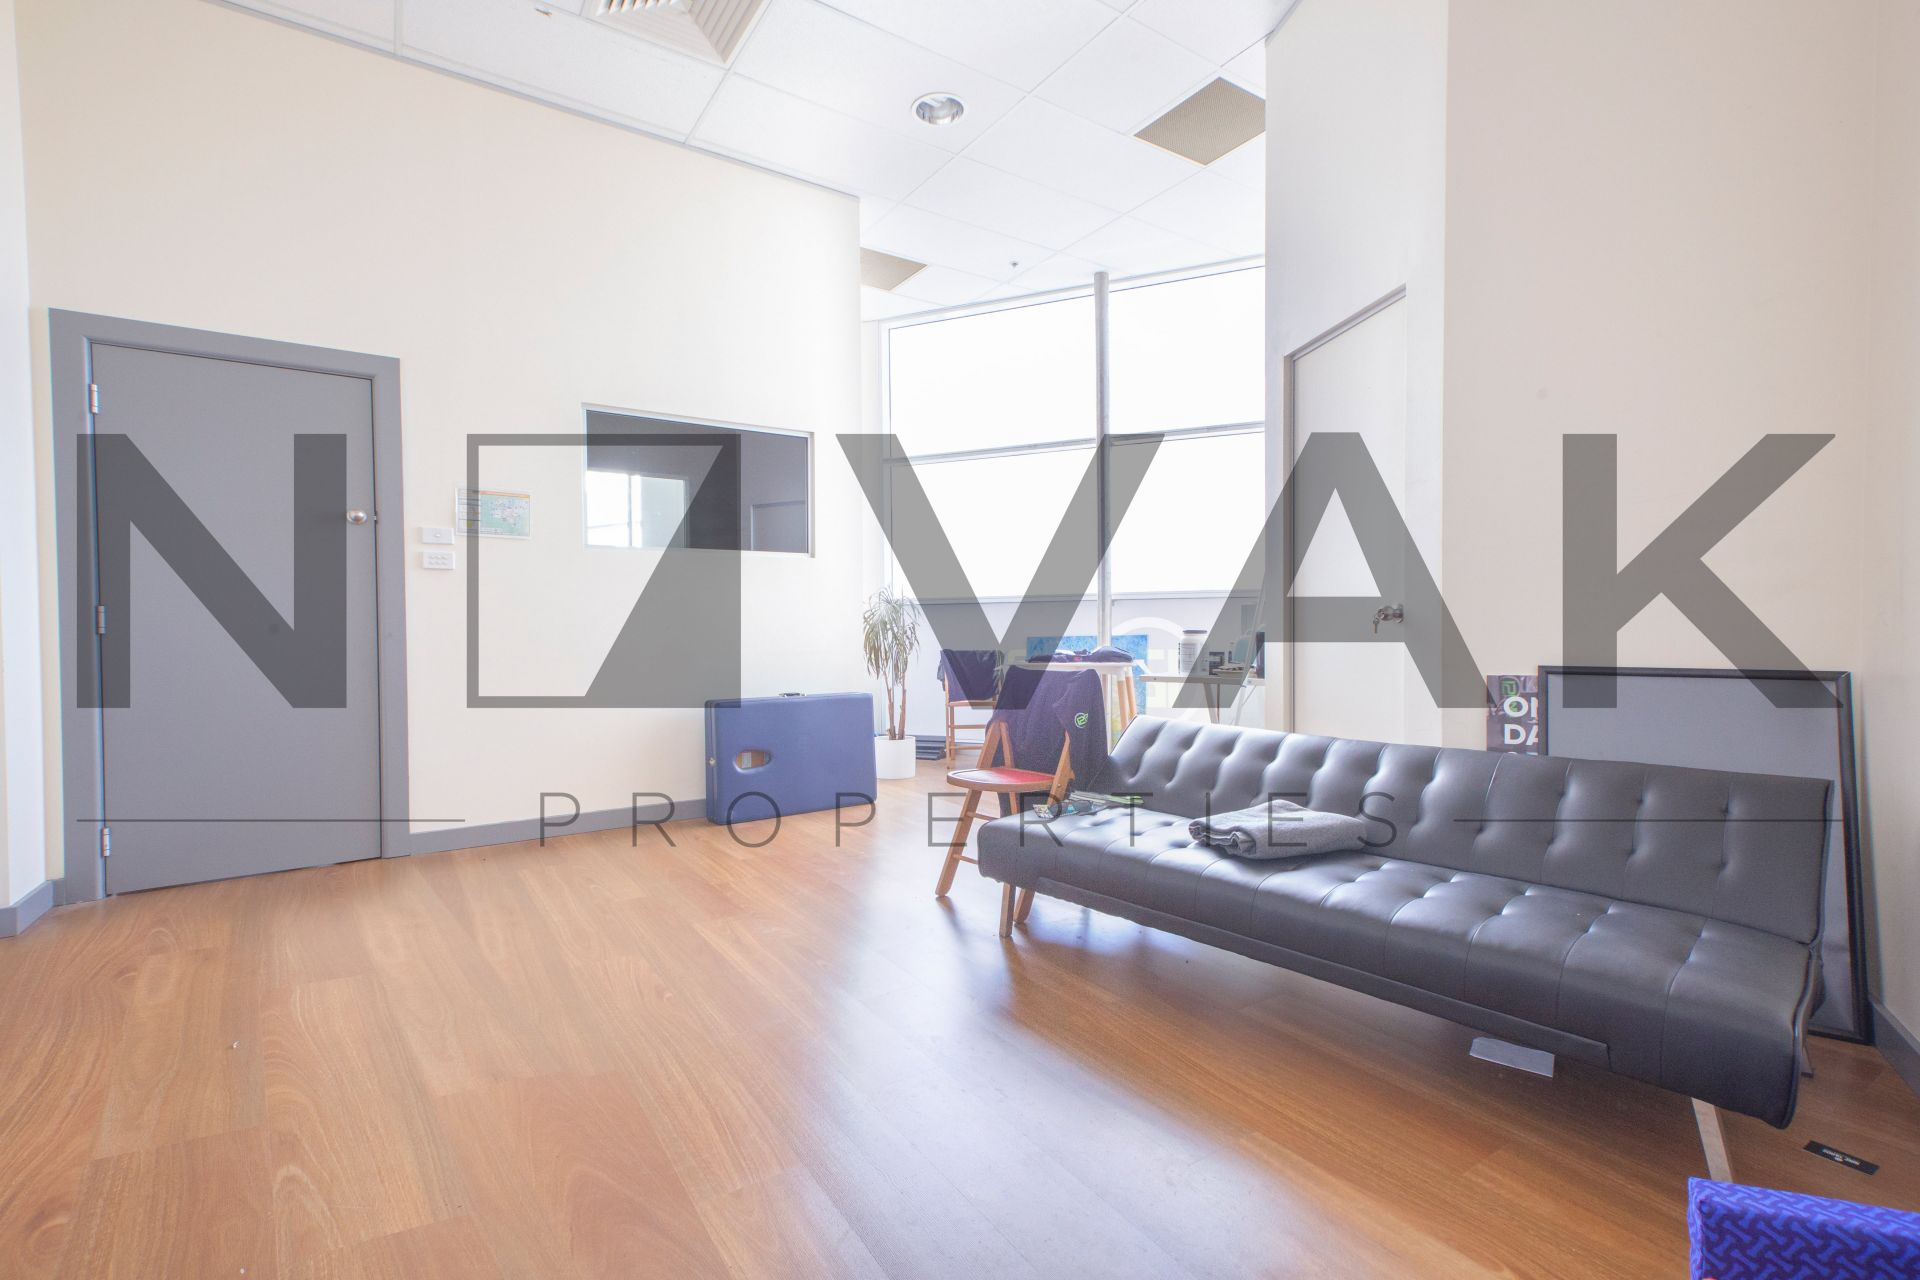 2 ROOMS IN IMMENSELY POPULAR HUB OF THE NORTHERN BEACHES